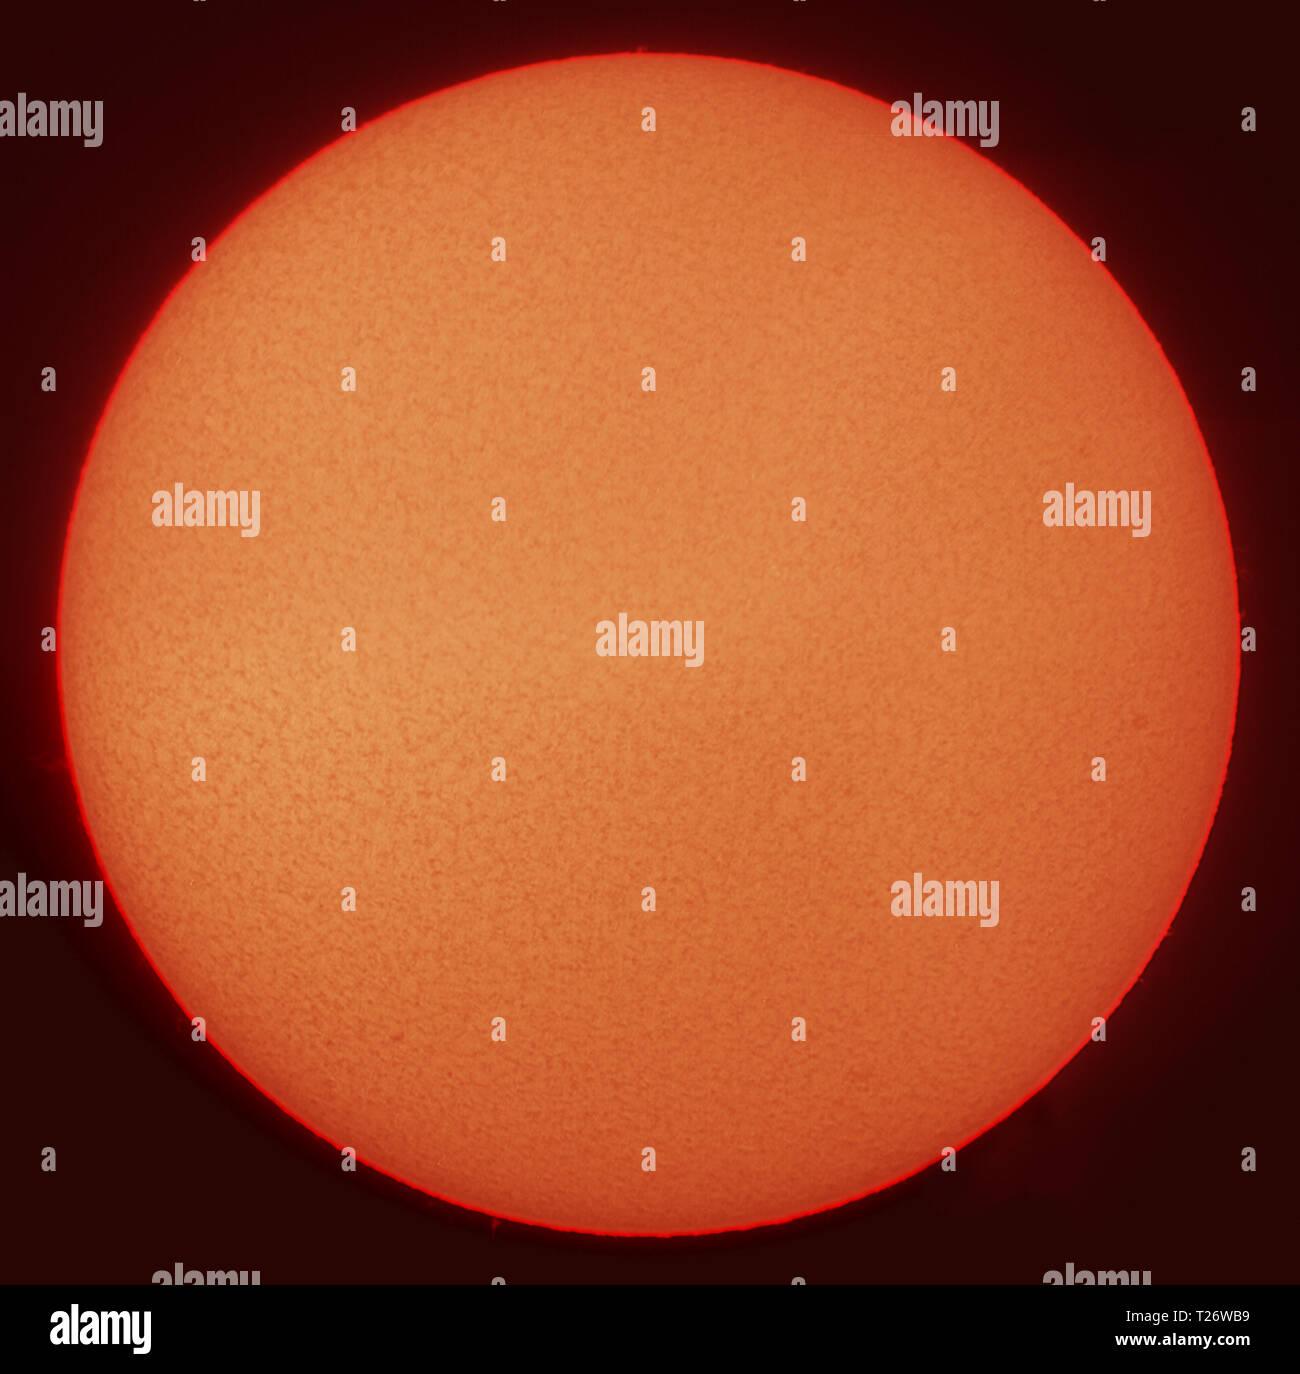 London, UK. 30 March, 2019. Solar filtered view of the sun disk clear of sunspots, solar minimum conditions with 5 consecutive days clear and a total of 58 days so far this year. Credit: Malcolm Park/Alamy Live News Stock Photo